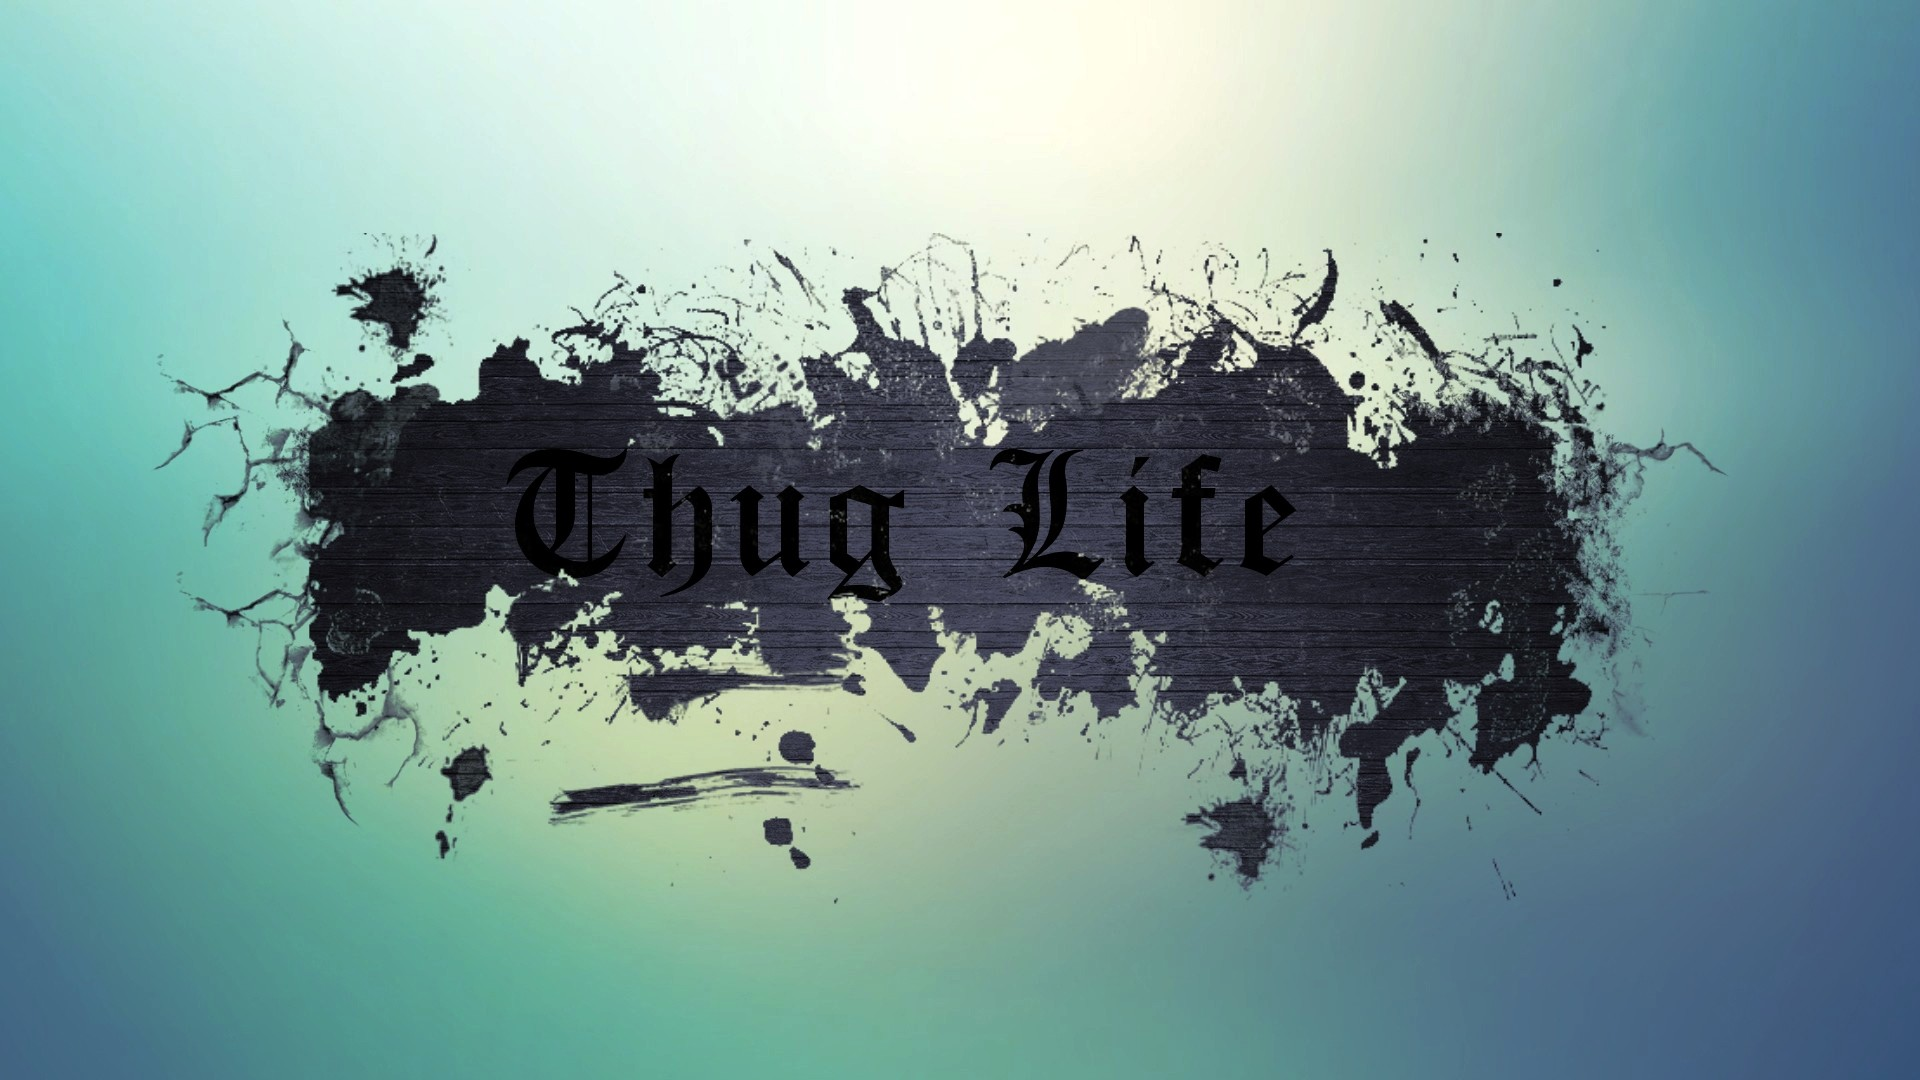 Thug life hd wallpaper 79 images 1920x1080 we are presenting here best collection of life screensavers for voltagebd Images